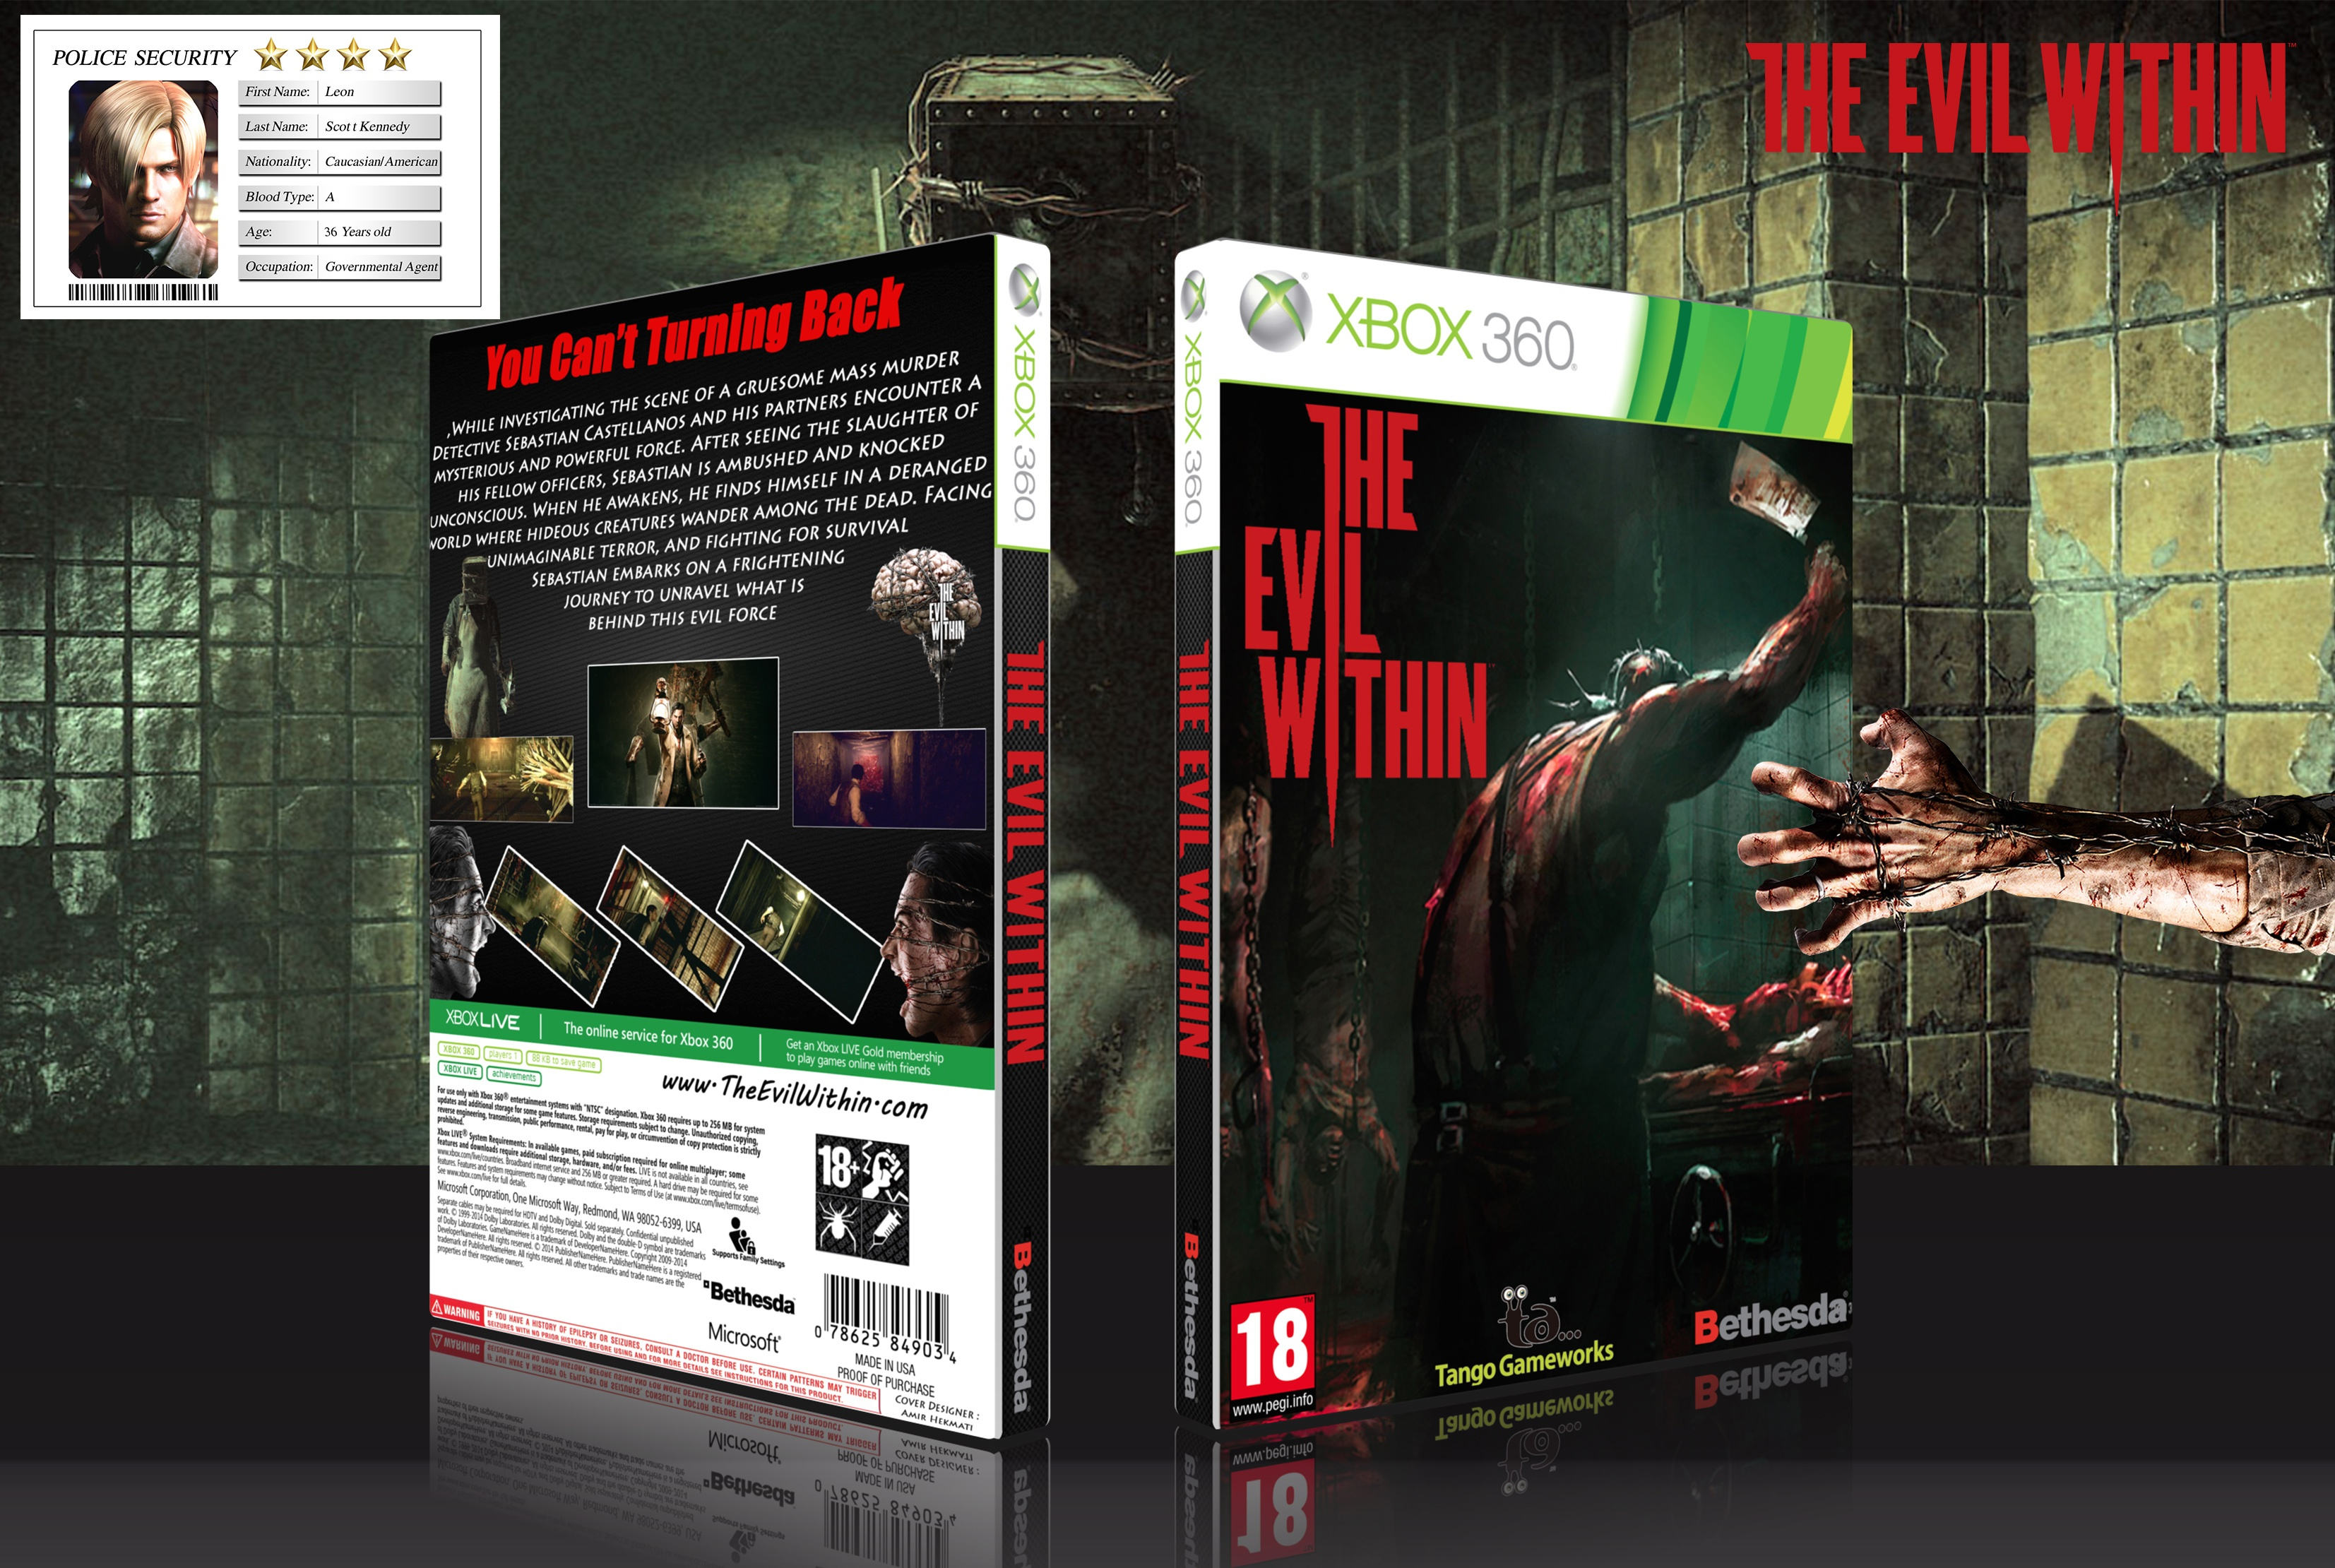 The Evil Within box cover